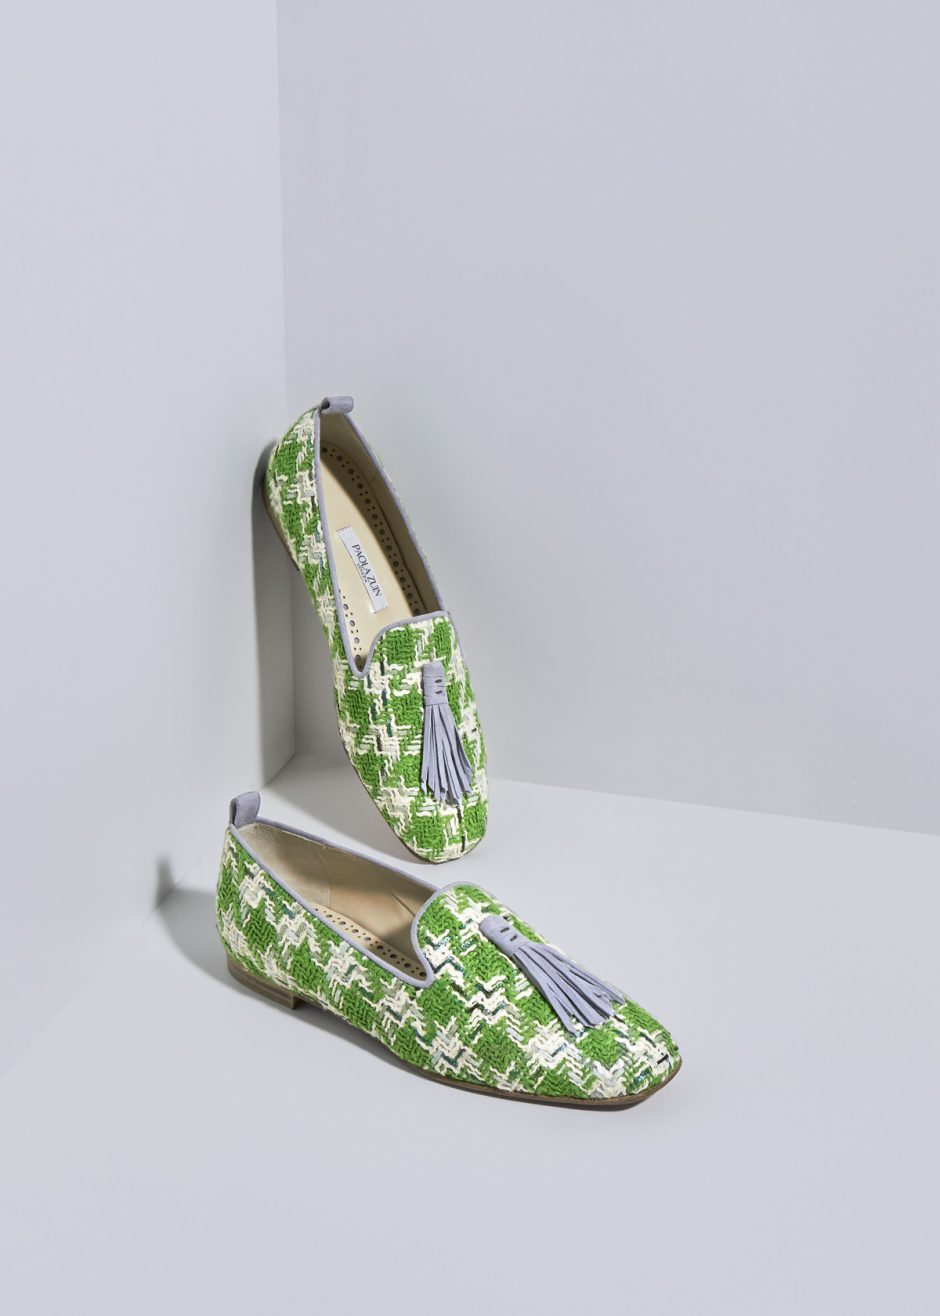 Sveva – Ballet flat Green/ivory houndstooth with grey suede tassel